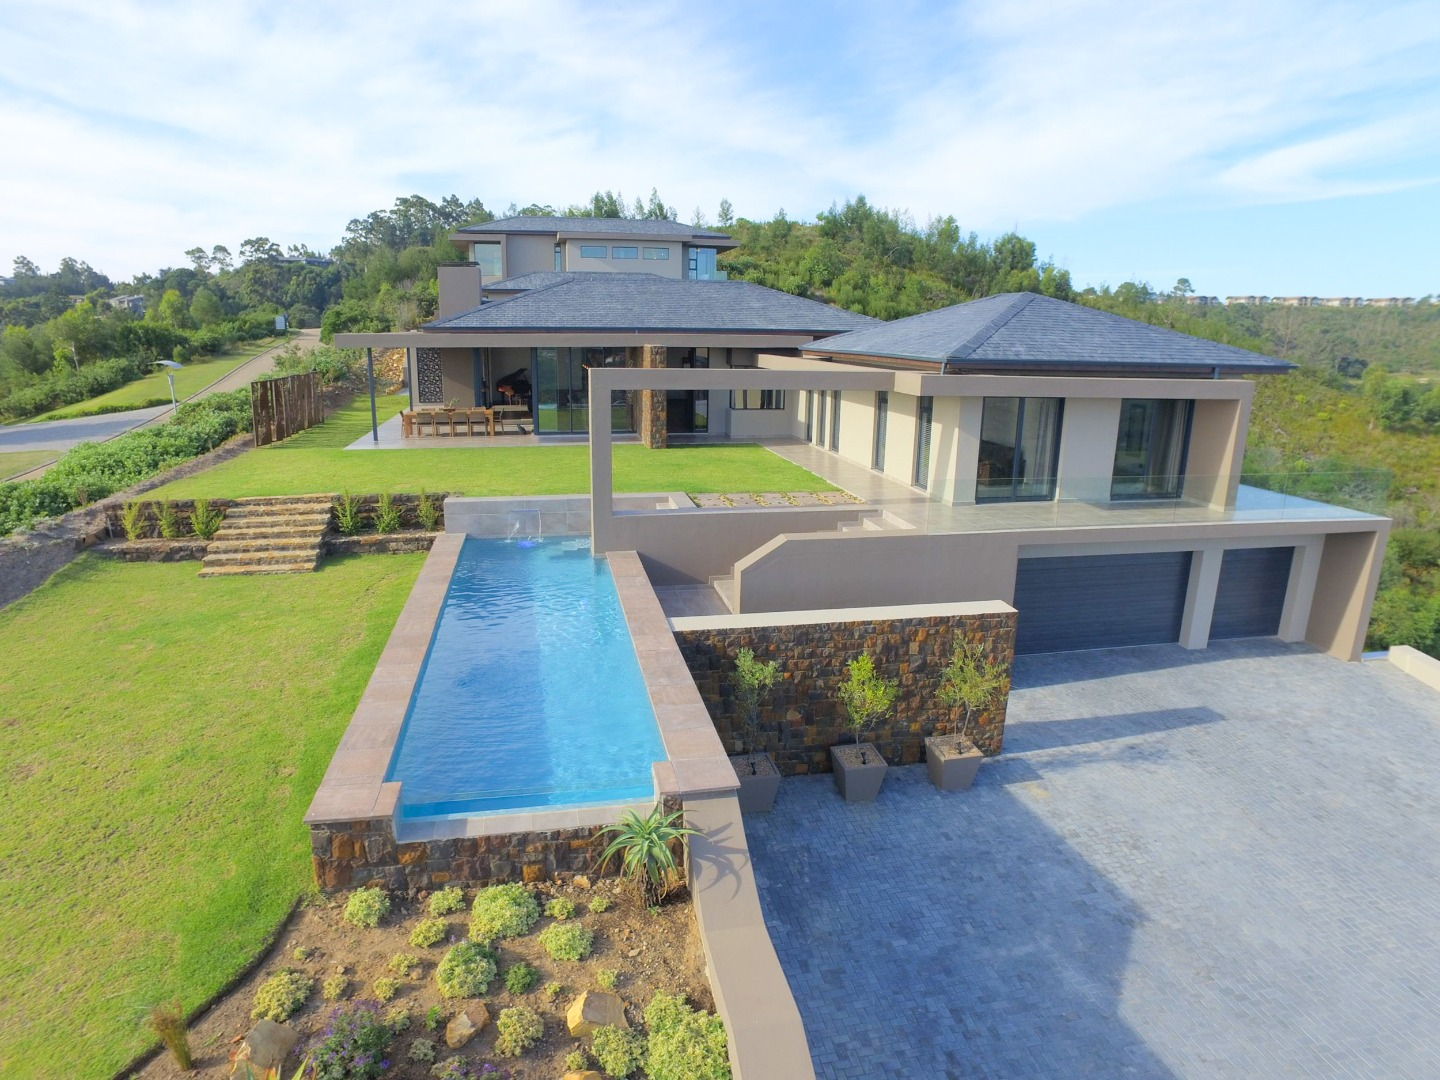 5 Bedroom House For Sale in Simola